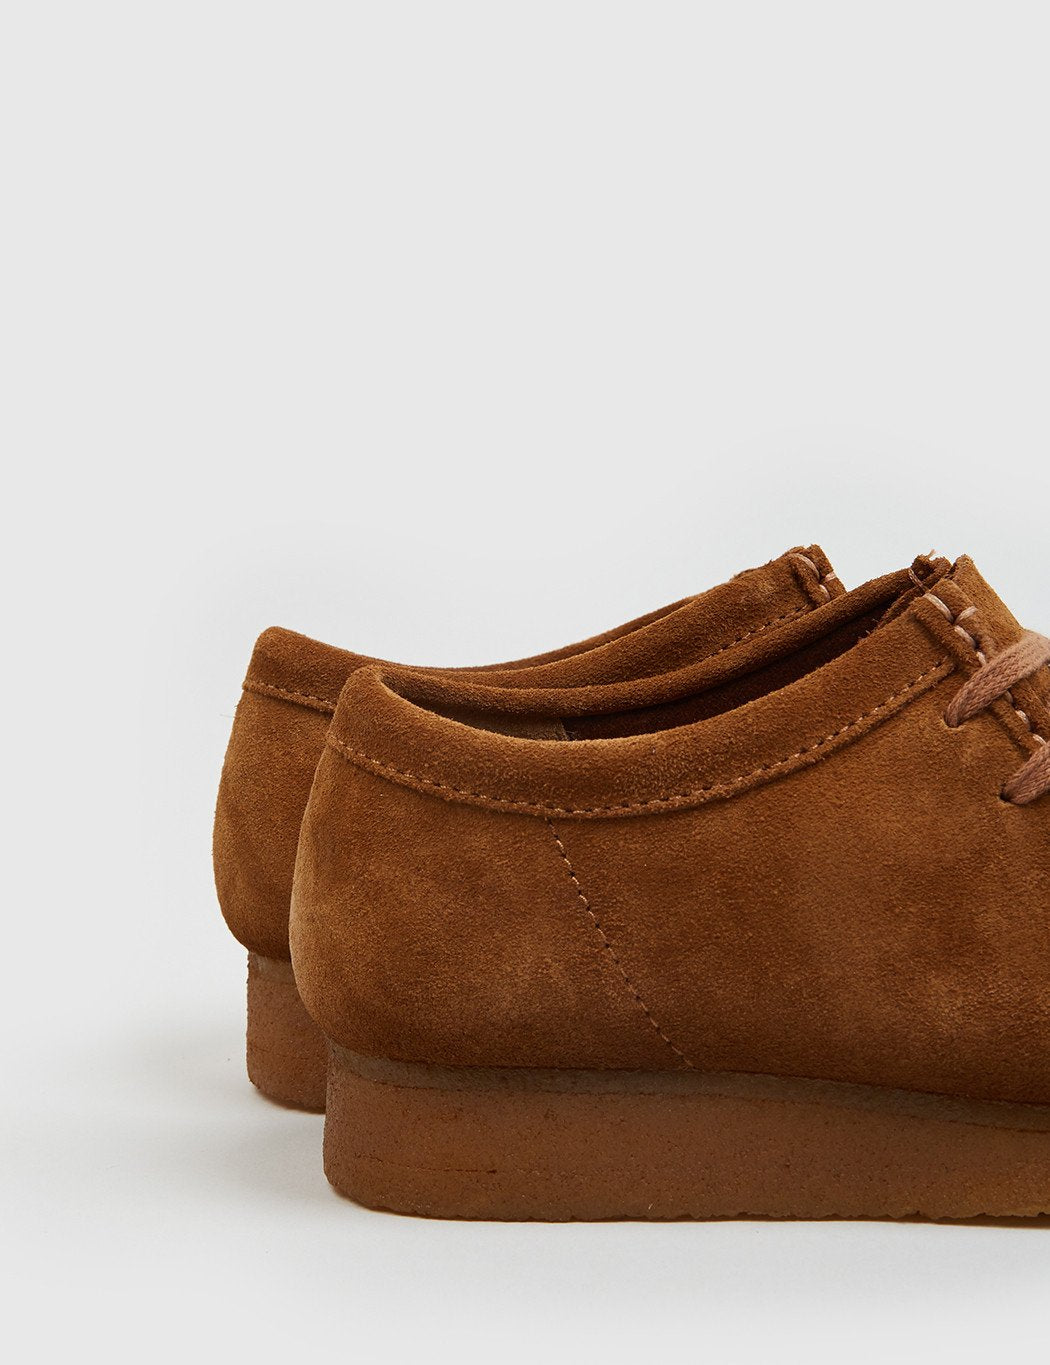 Clarks Originals Wallabees - Cola